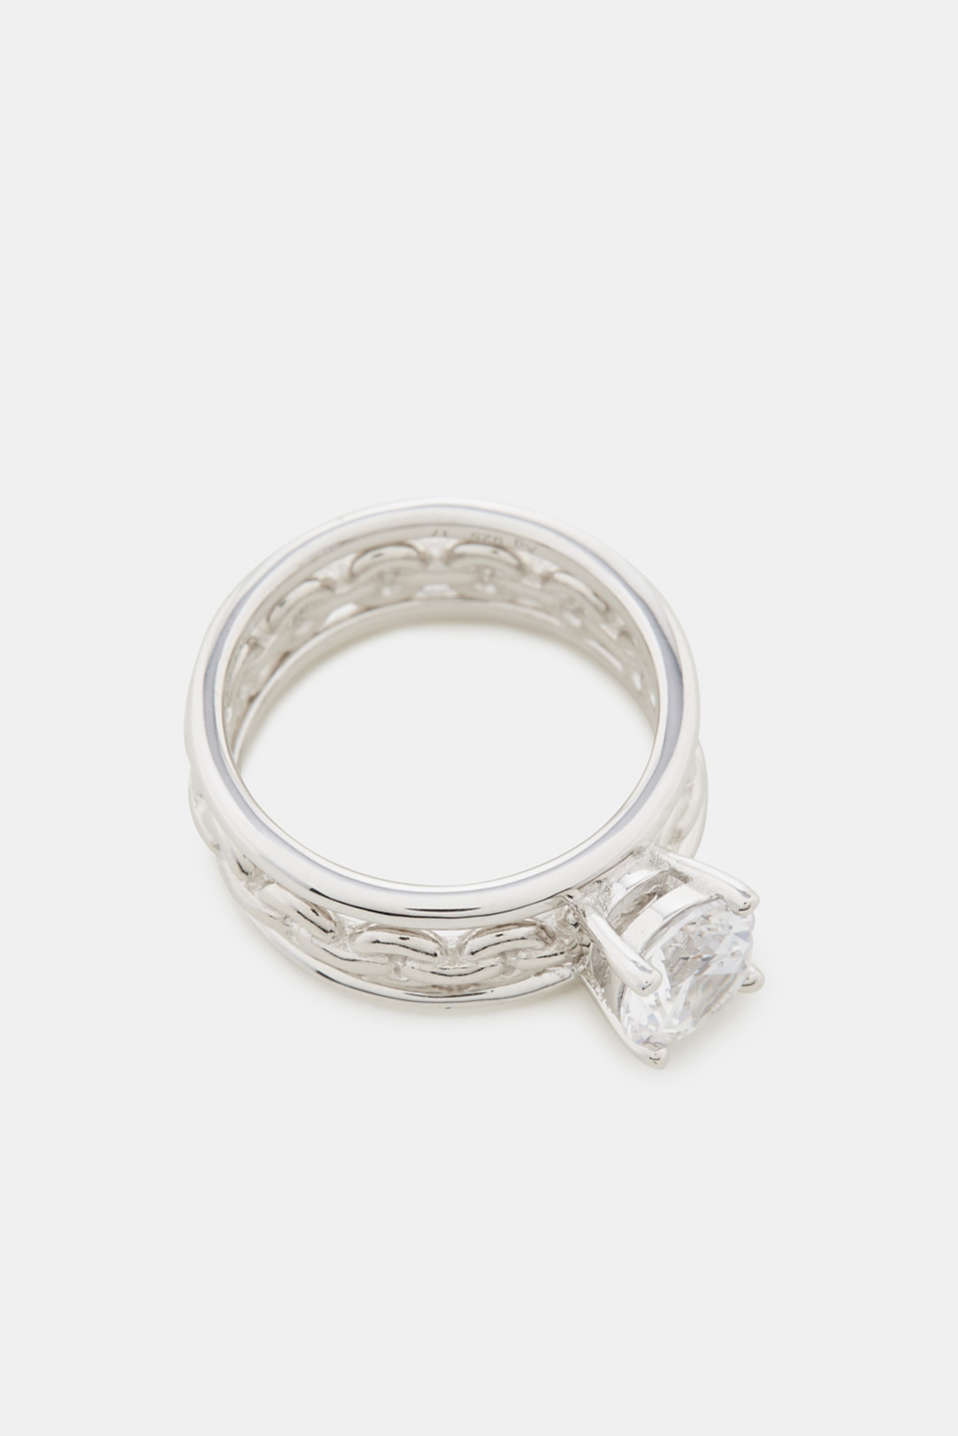 Ring set with zirconia, in sterling silver